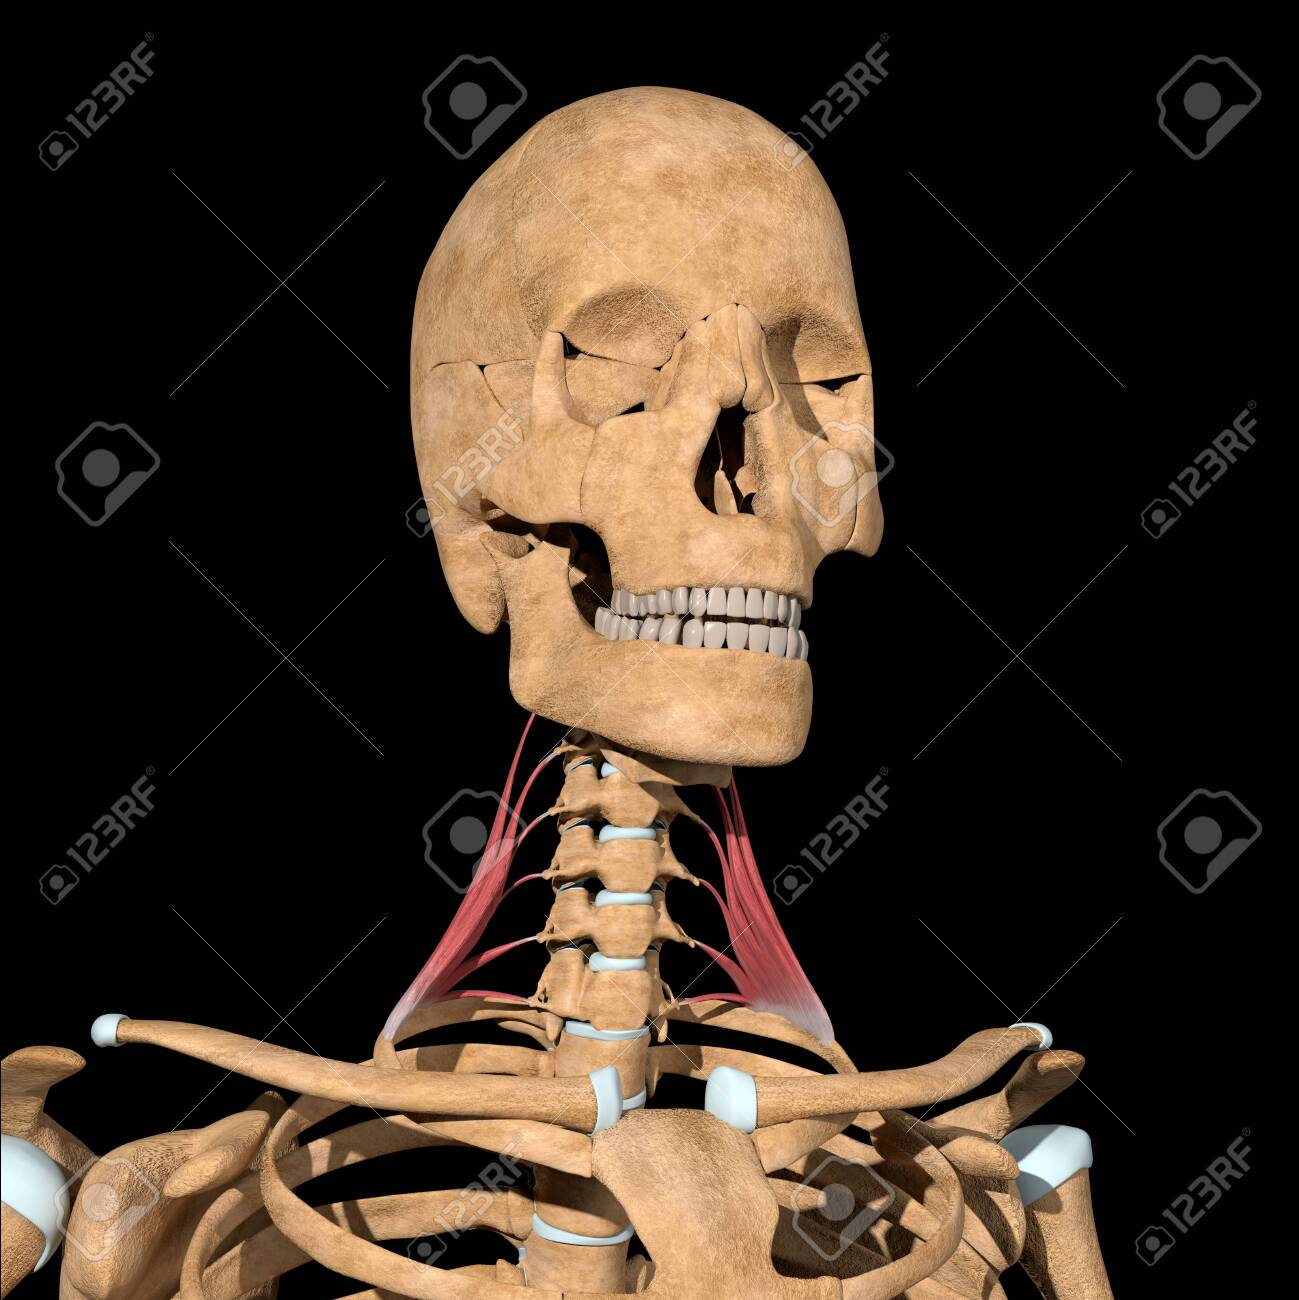 This 3d illustration shows the scalene medius muscles on skeleton - 141536742